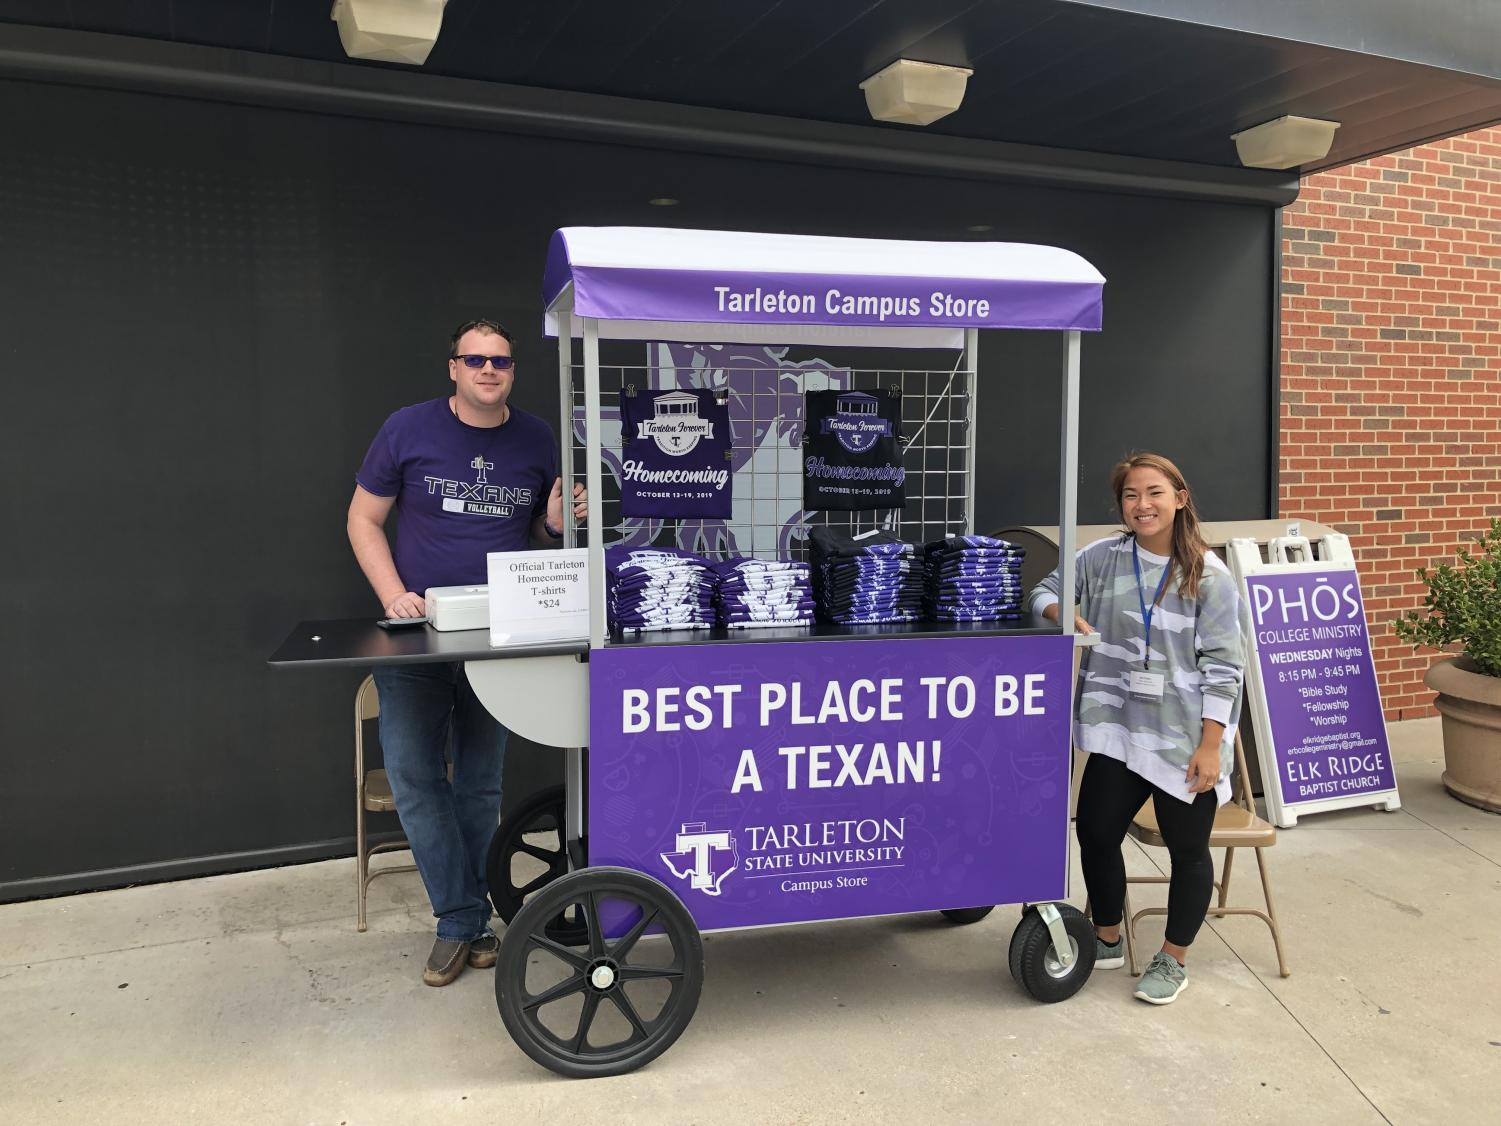 Tarleton's campus store will have their mobile cart outside of the dining hall every Thursday from 11 a.m. to 2 p.m.